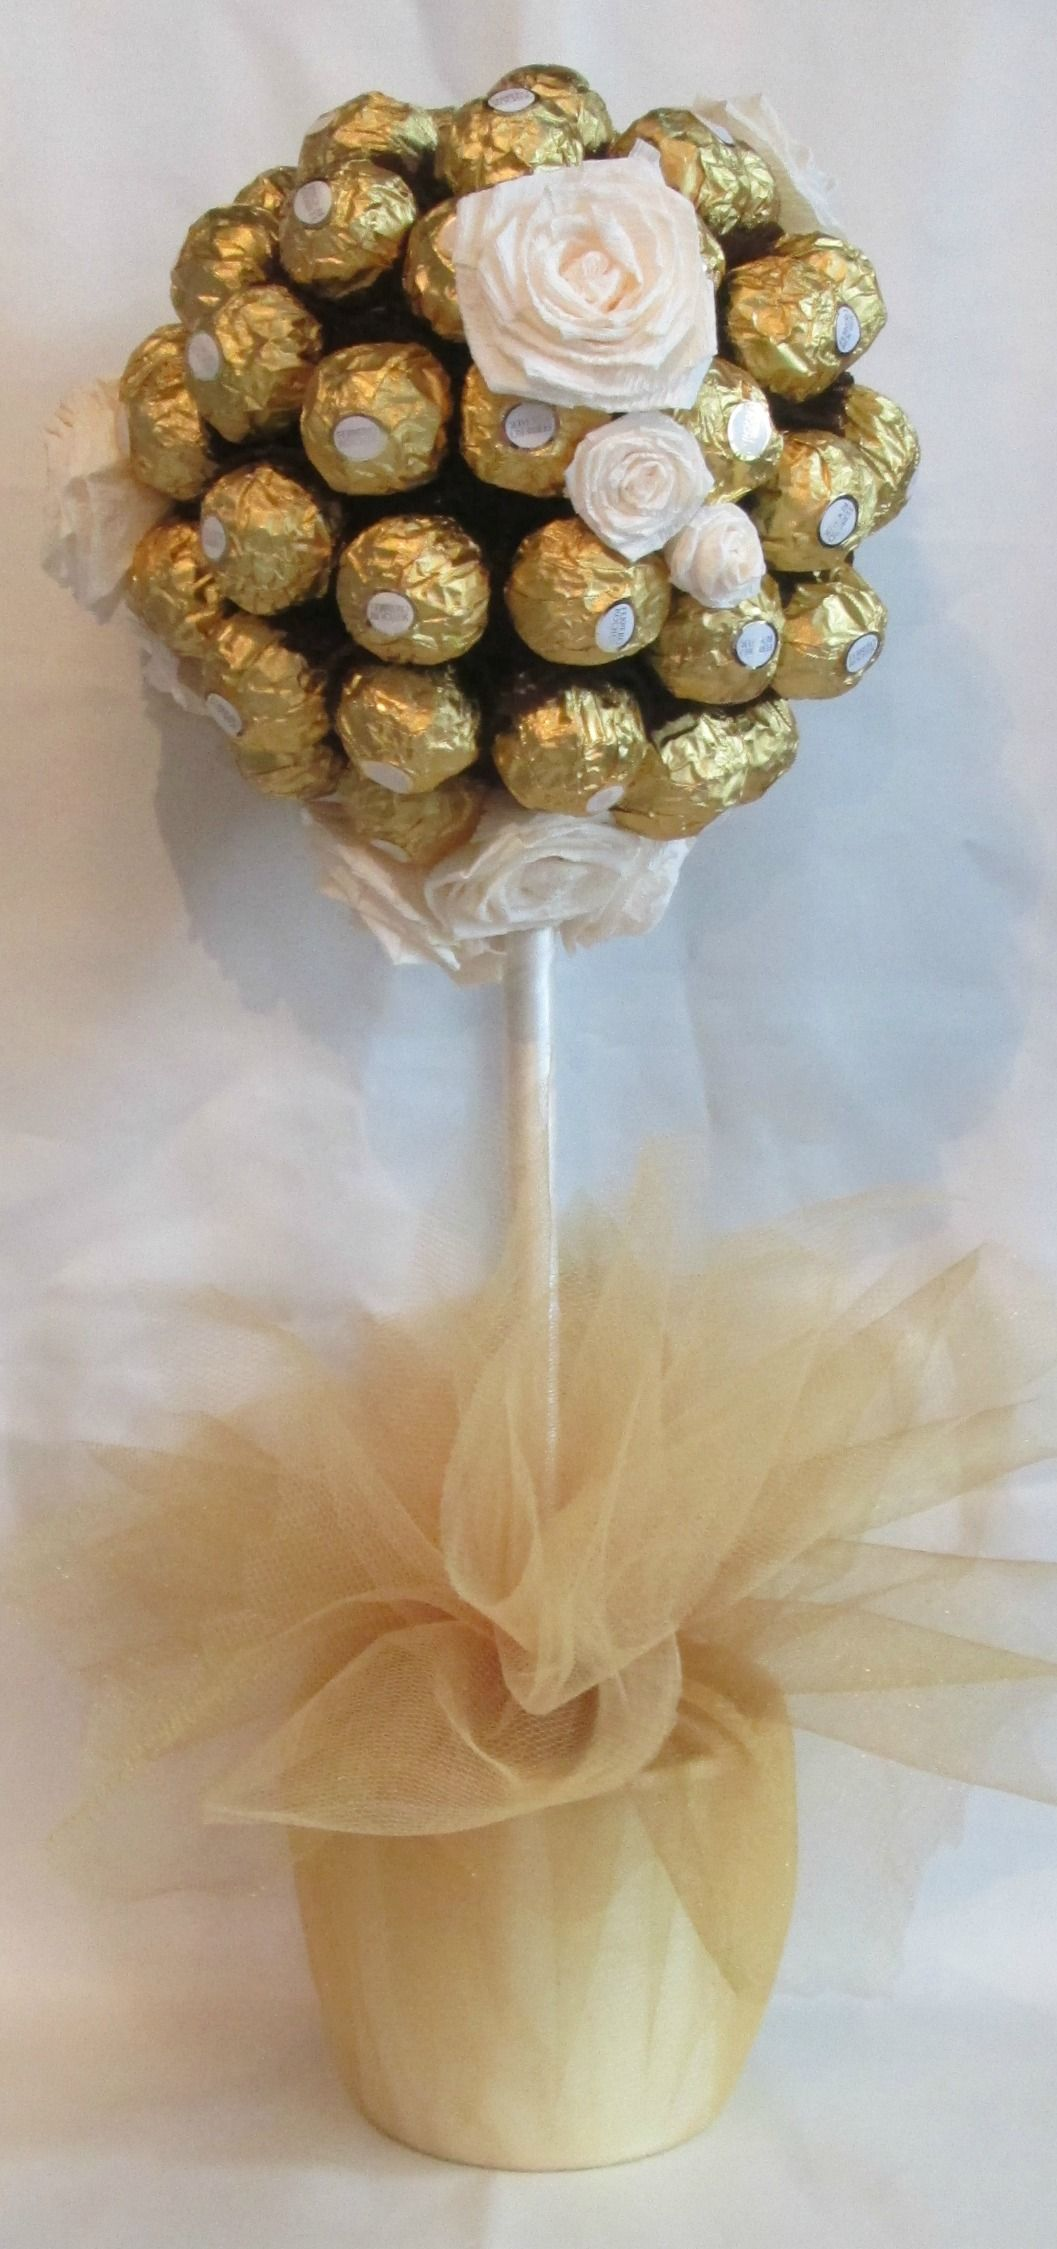 Ferrero Rocher Sweet Tree In Ivory And Gold Gifts For Special